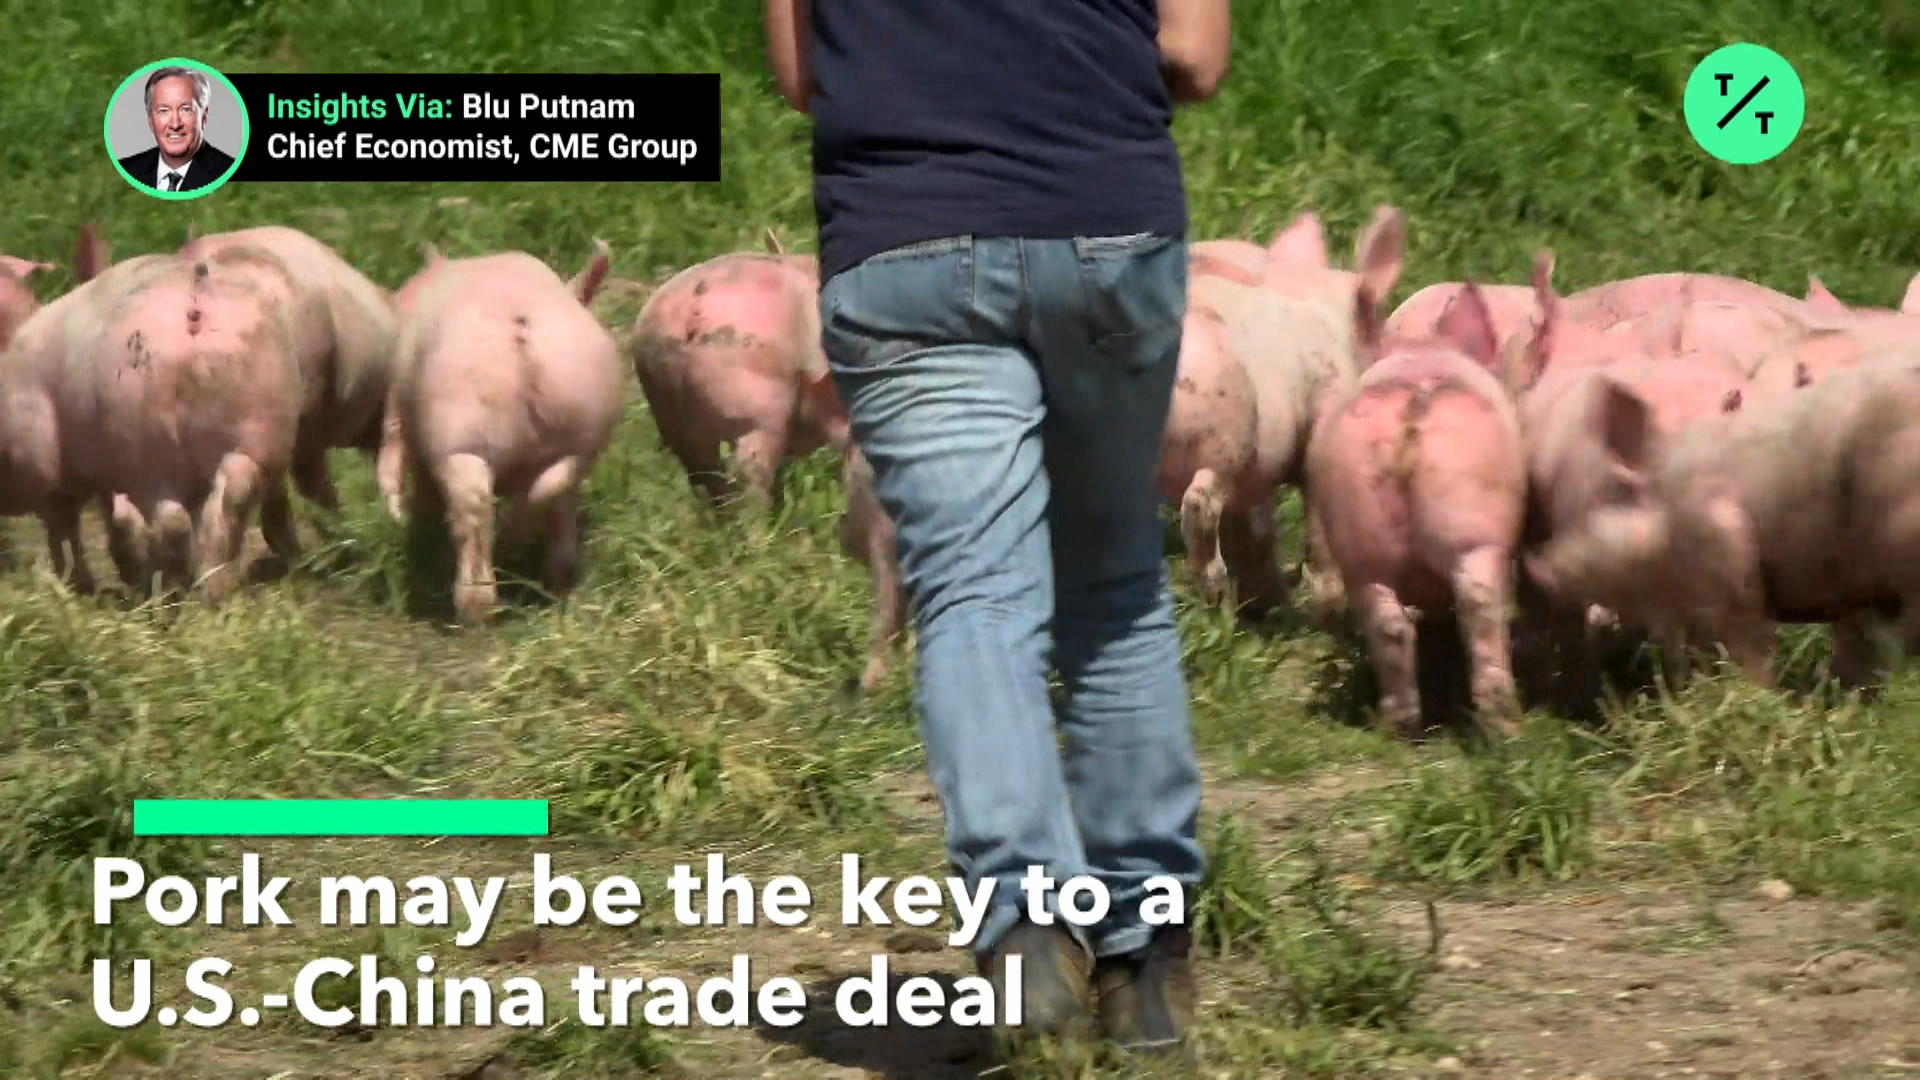 The key to a U.S.-China trade deal